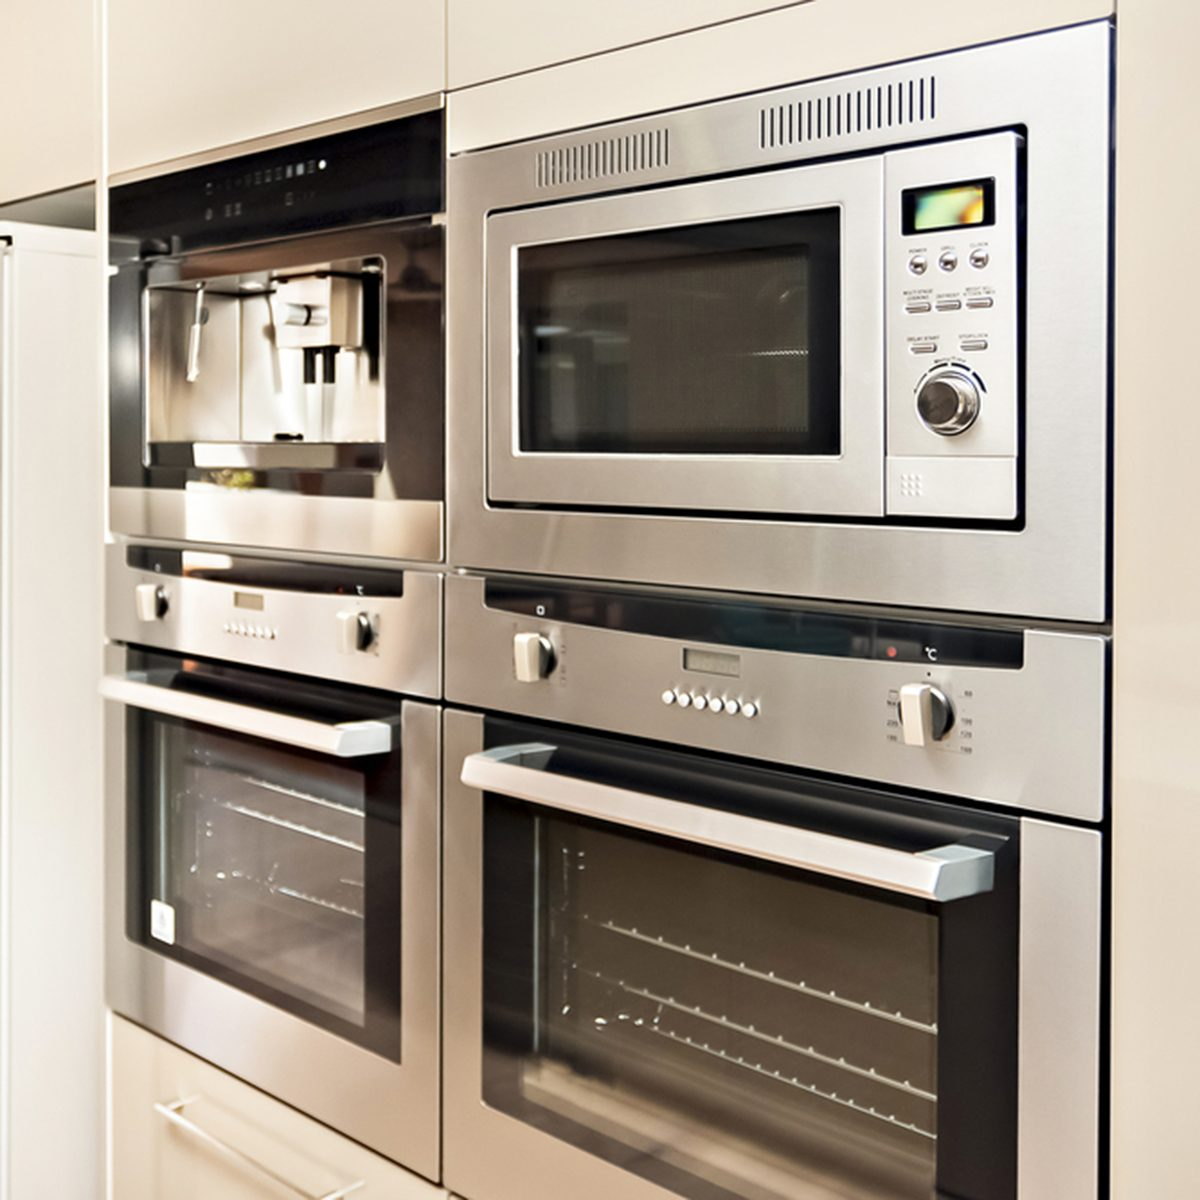 Luxurious kitchenware including silver oven and refrigerator in the kitchen which has a wooden floor, Pantry cupboards are light brown color and installed around the cooker and fridge. ; Shutterstock ID 469237499